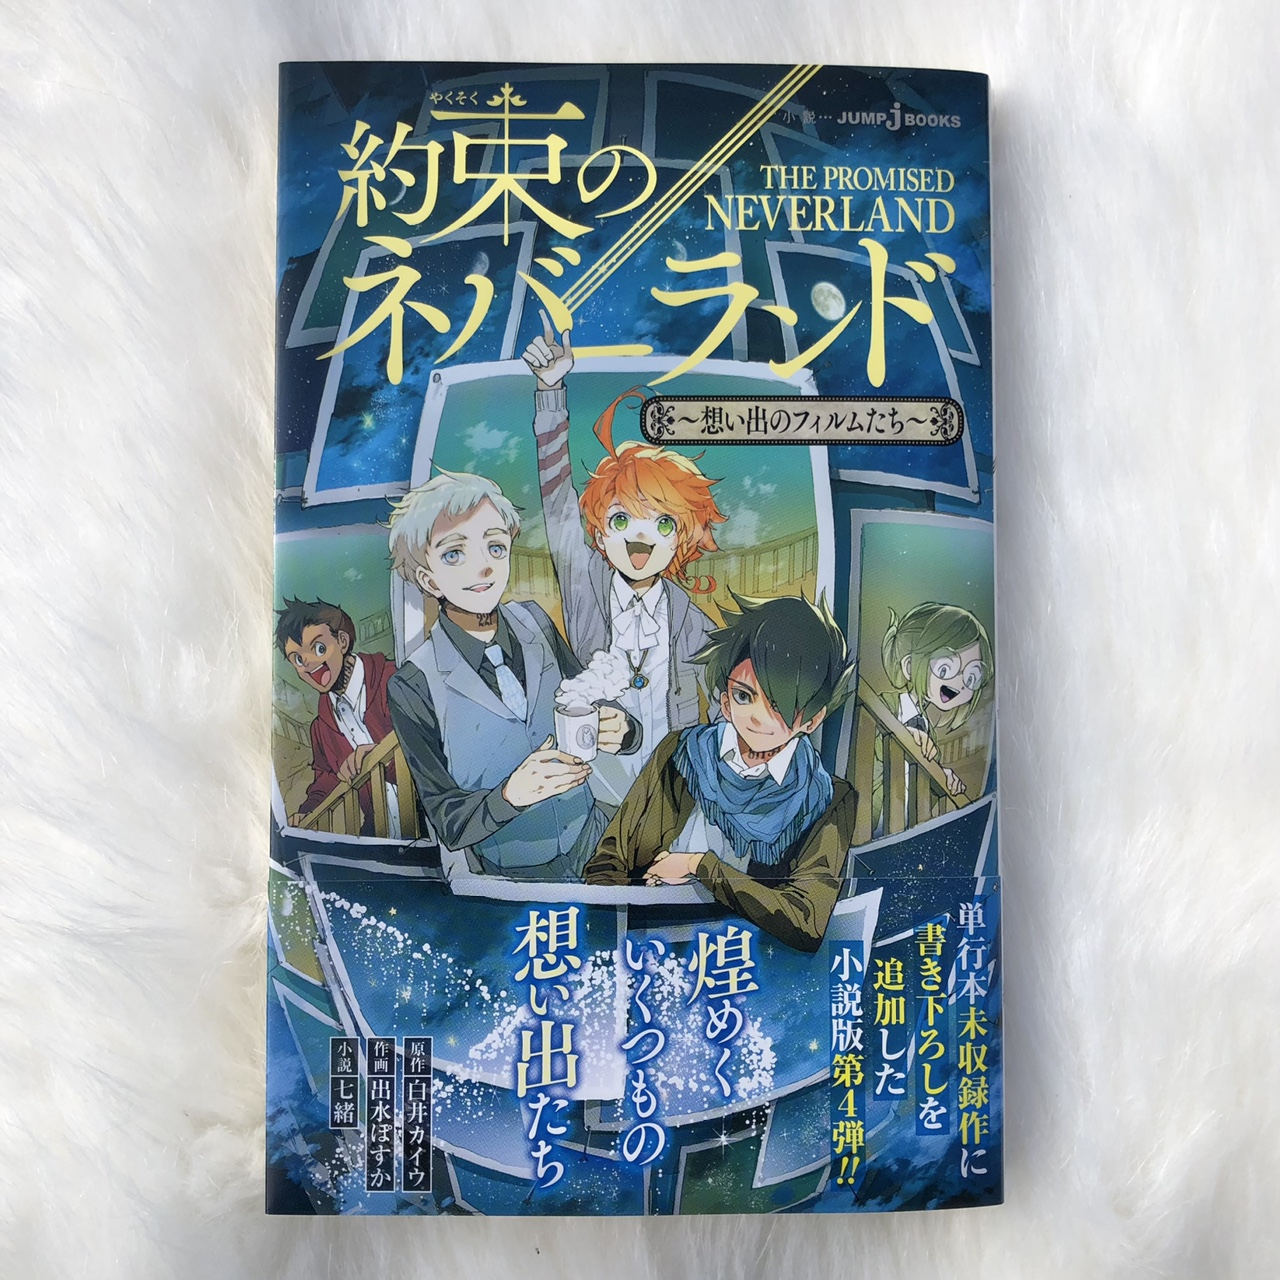 Product Image 1 - 🌸the promised neverland novel🌸  - includes